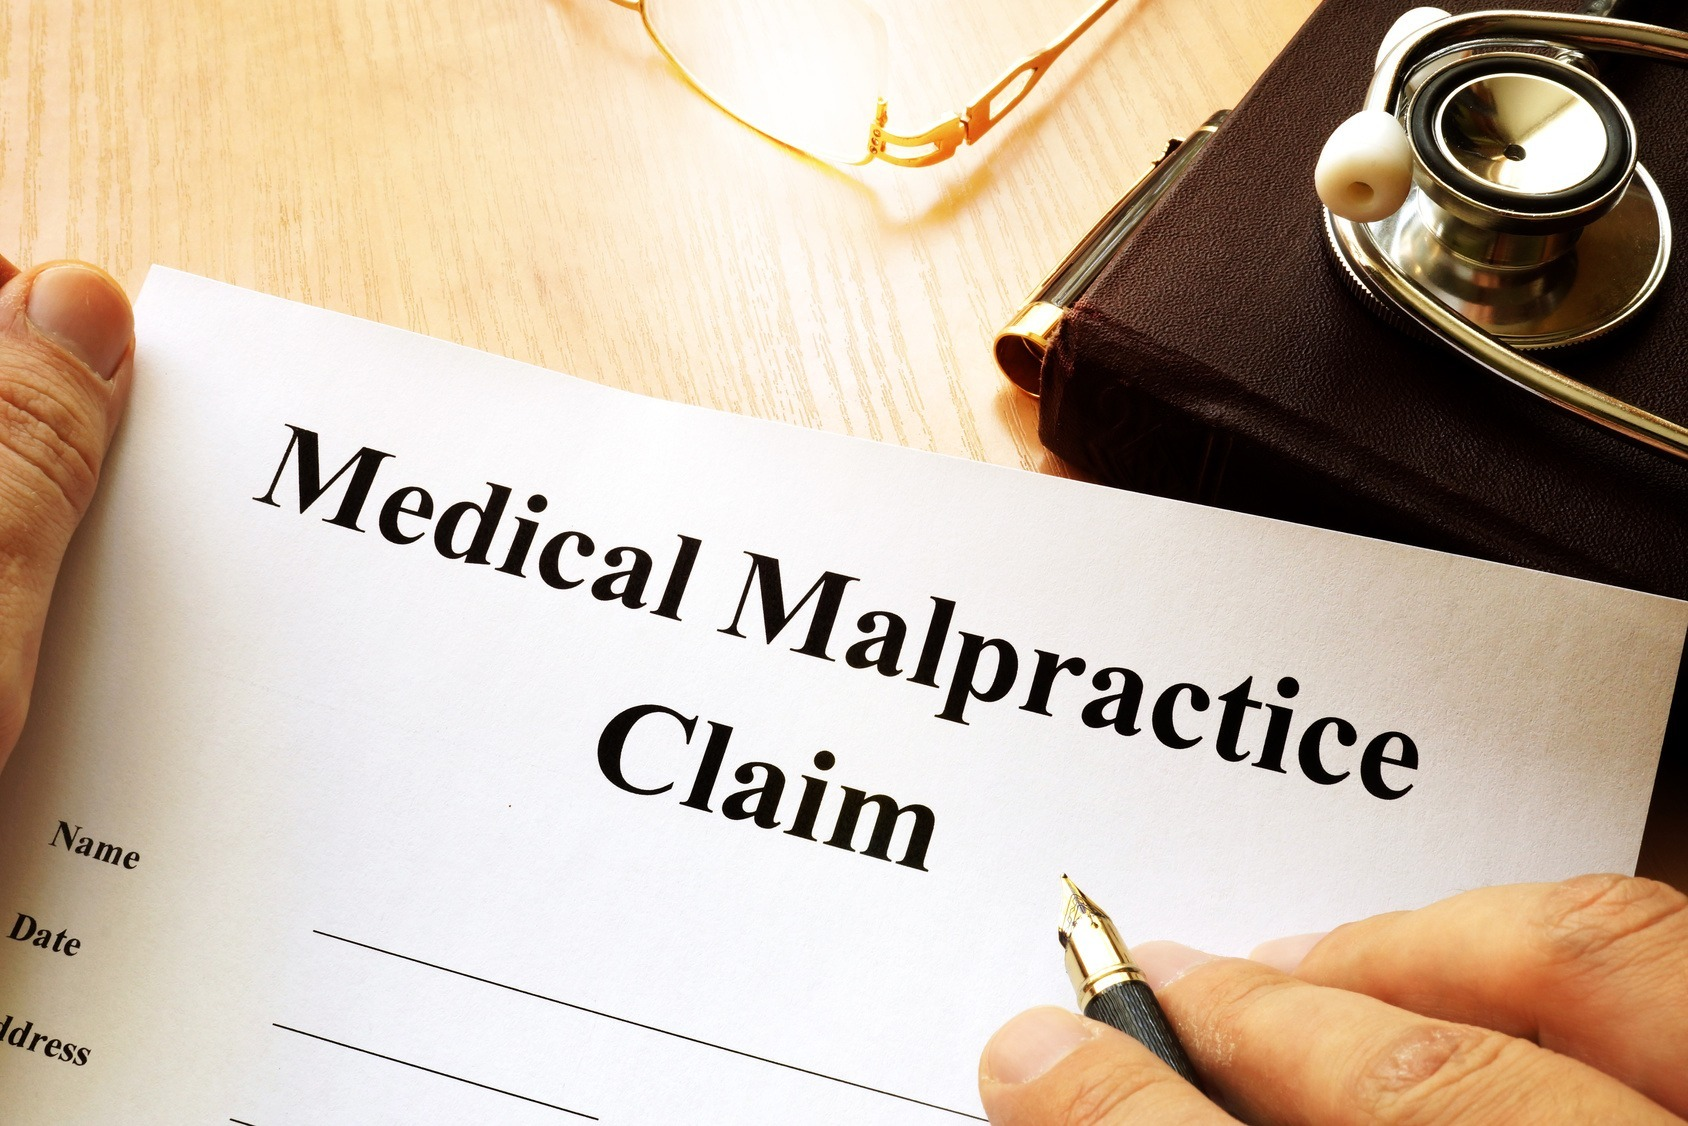 Dr. Bruce G. Fagel Speaks on What Is Considered to Be Medical Malpractice in California